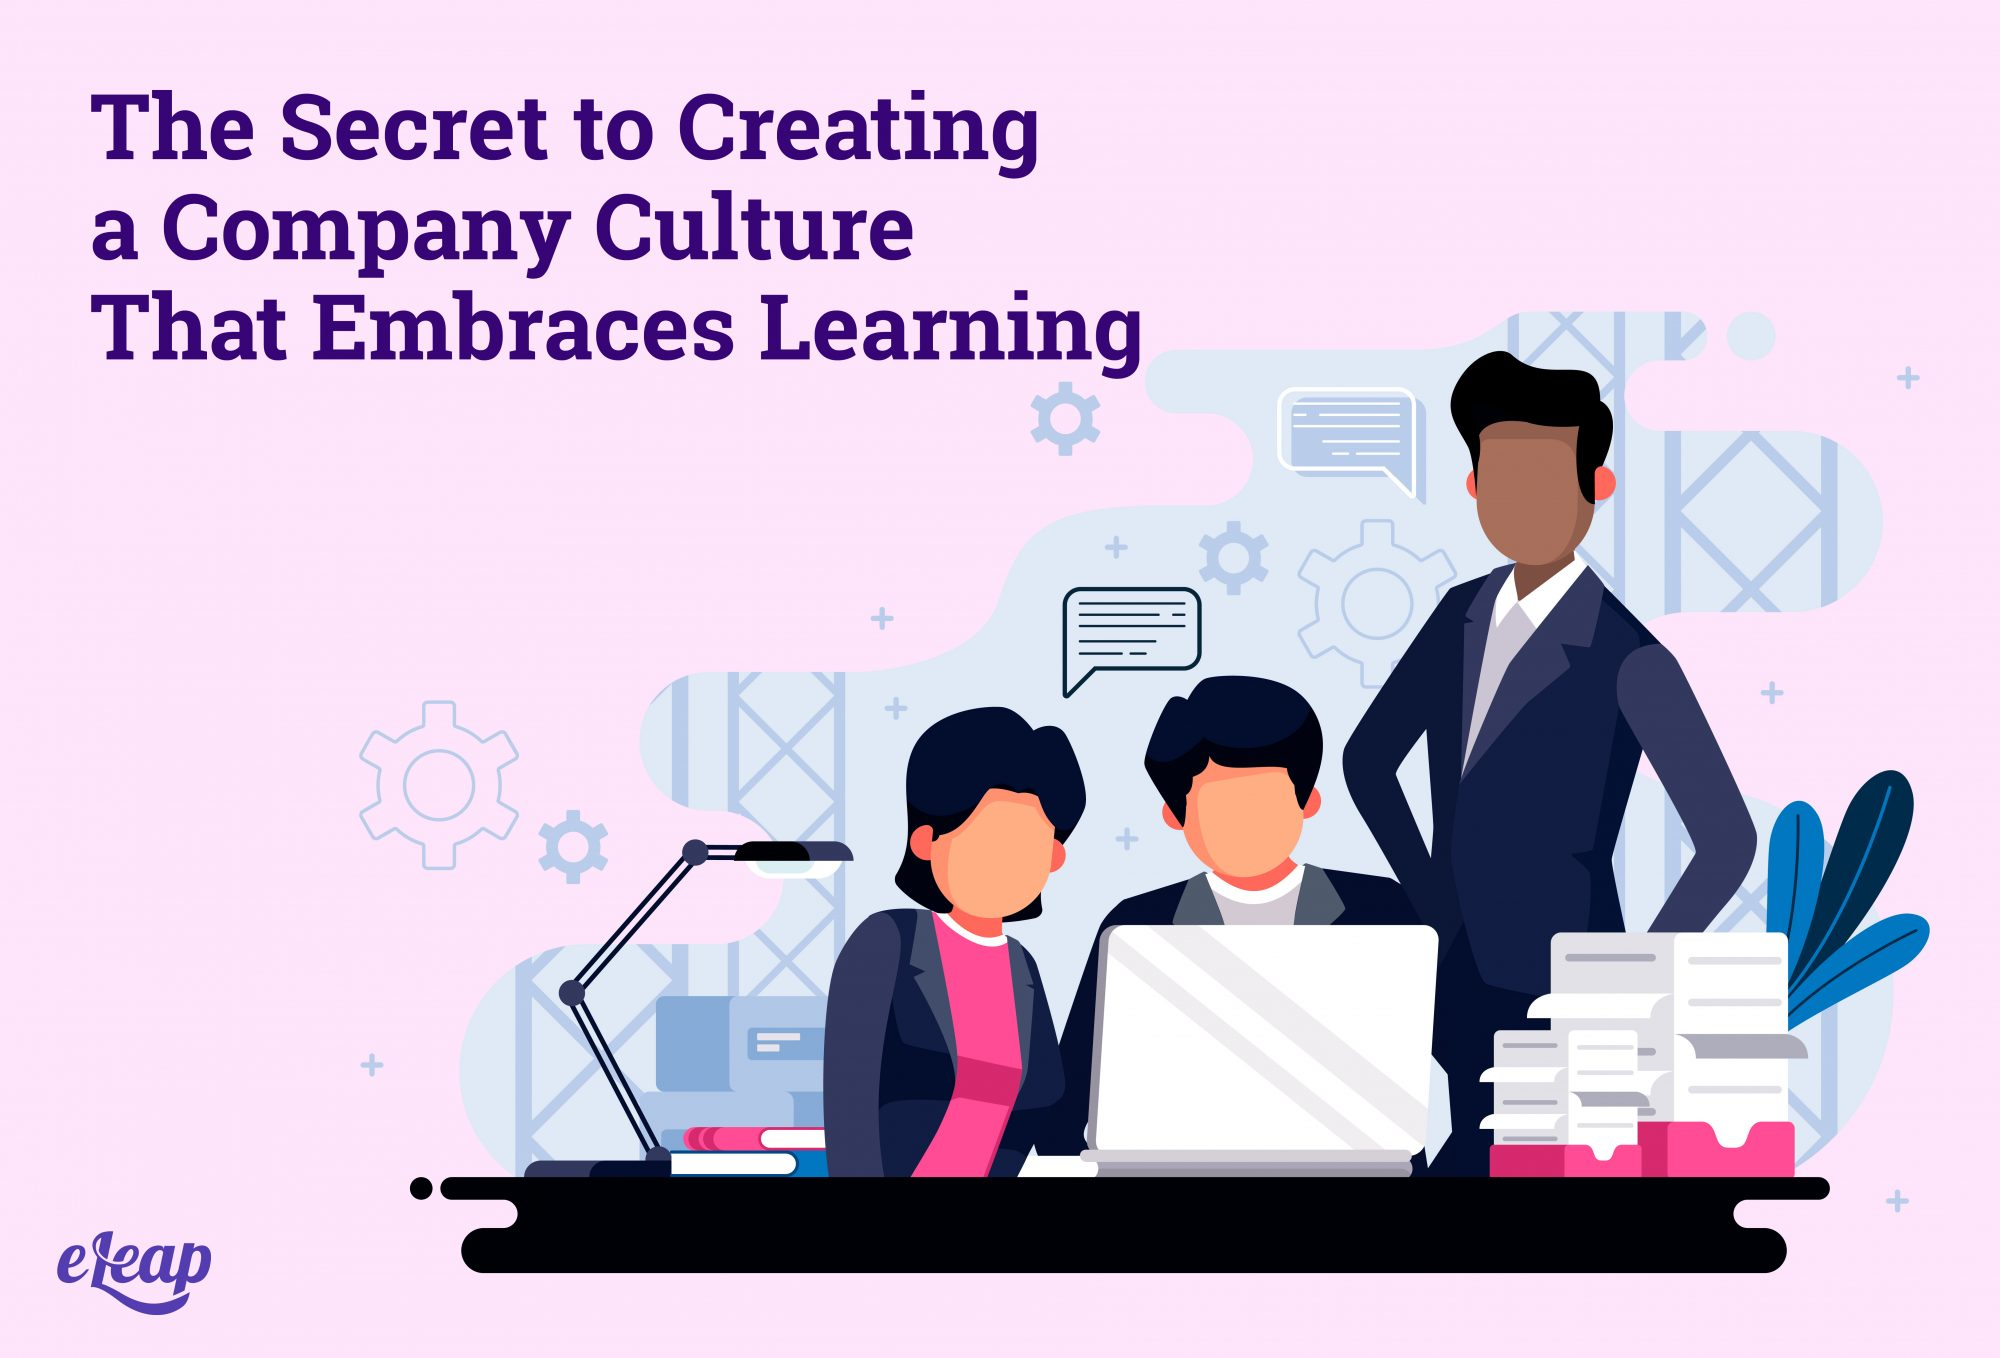 The Secret to Creating a Company Culture That Embraces Learning